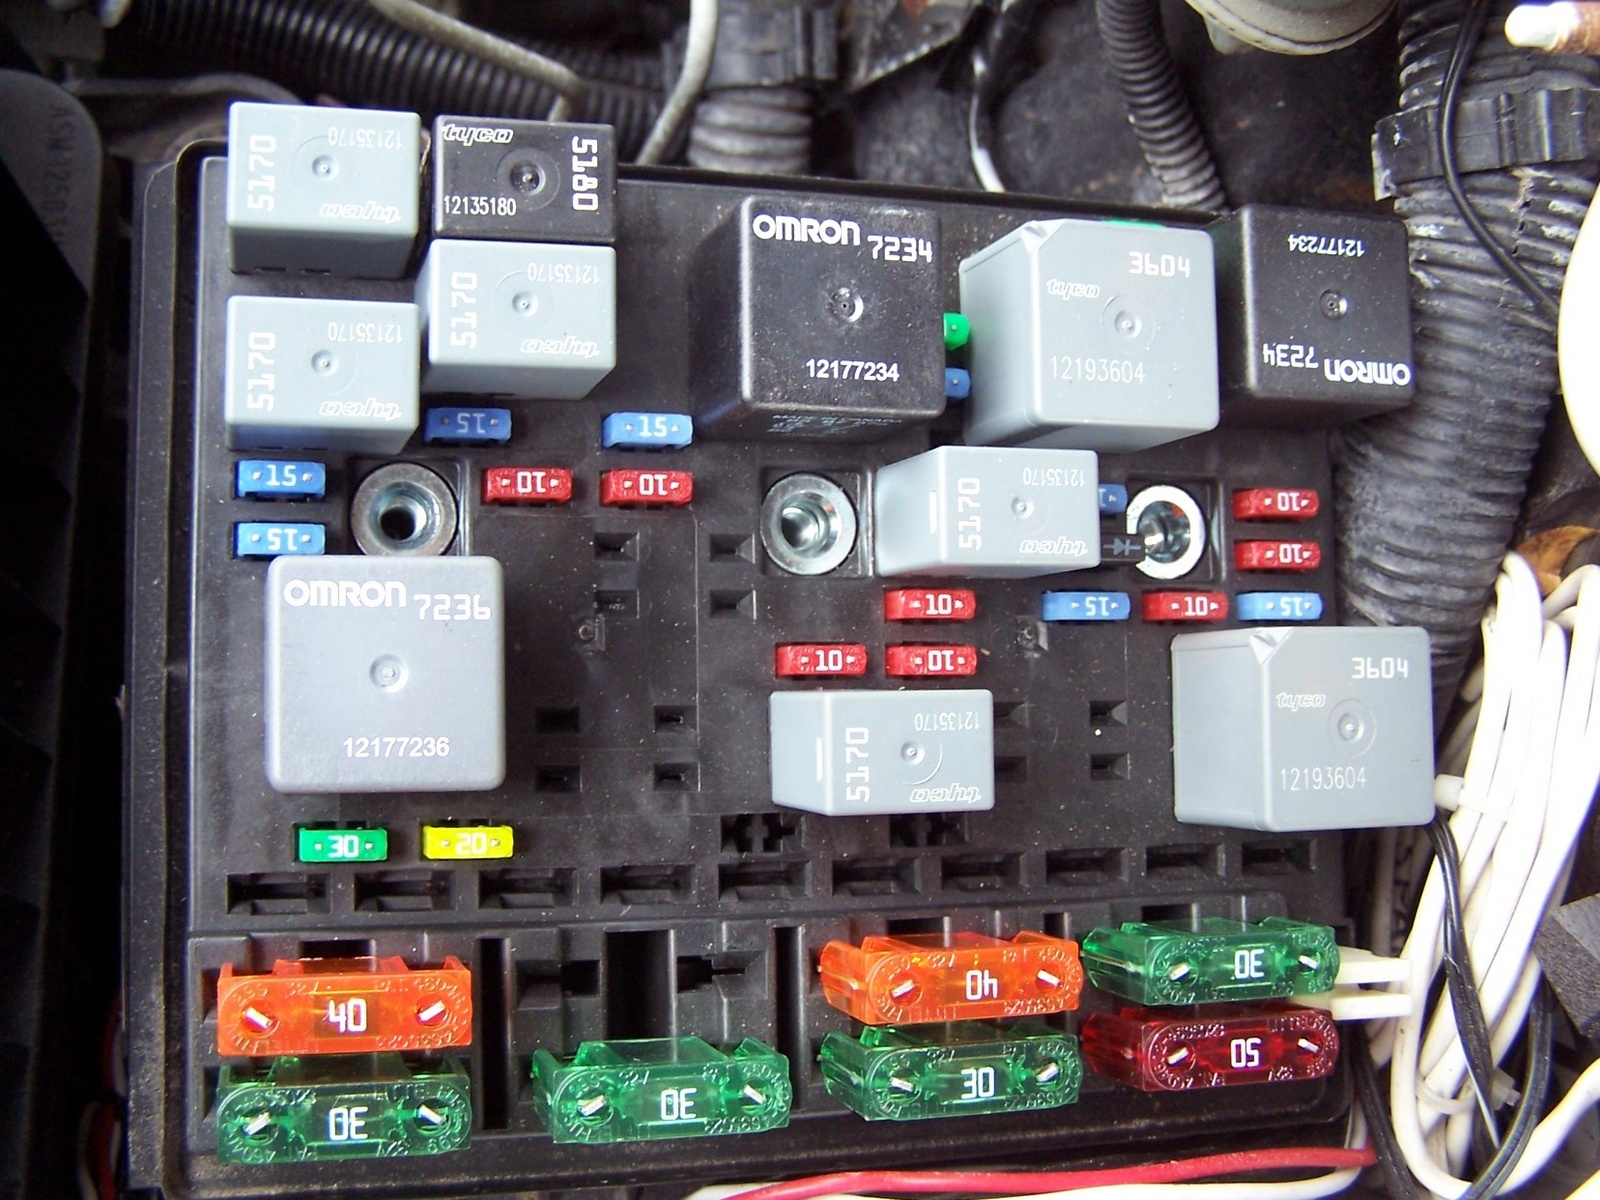 pic 8441705224458495285 chevy hhr fuse box location 06 hhr battery location wiring diagram Car Cigarette Lighter at gsmx.co